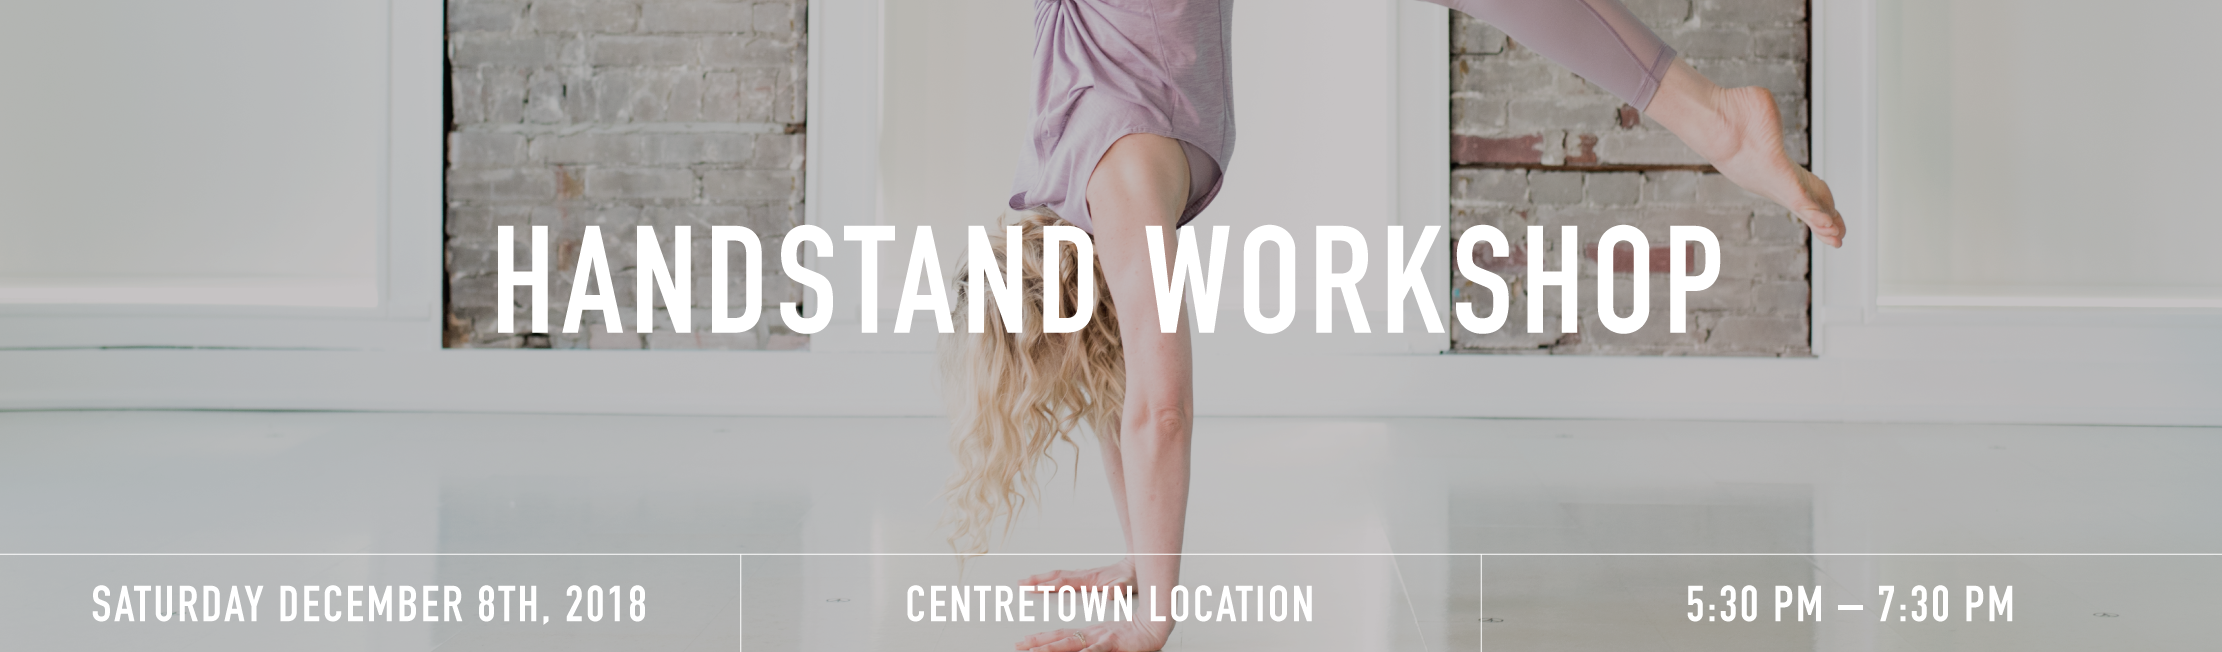 Handstand workshop banner  10